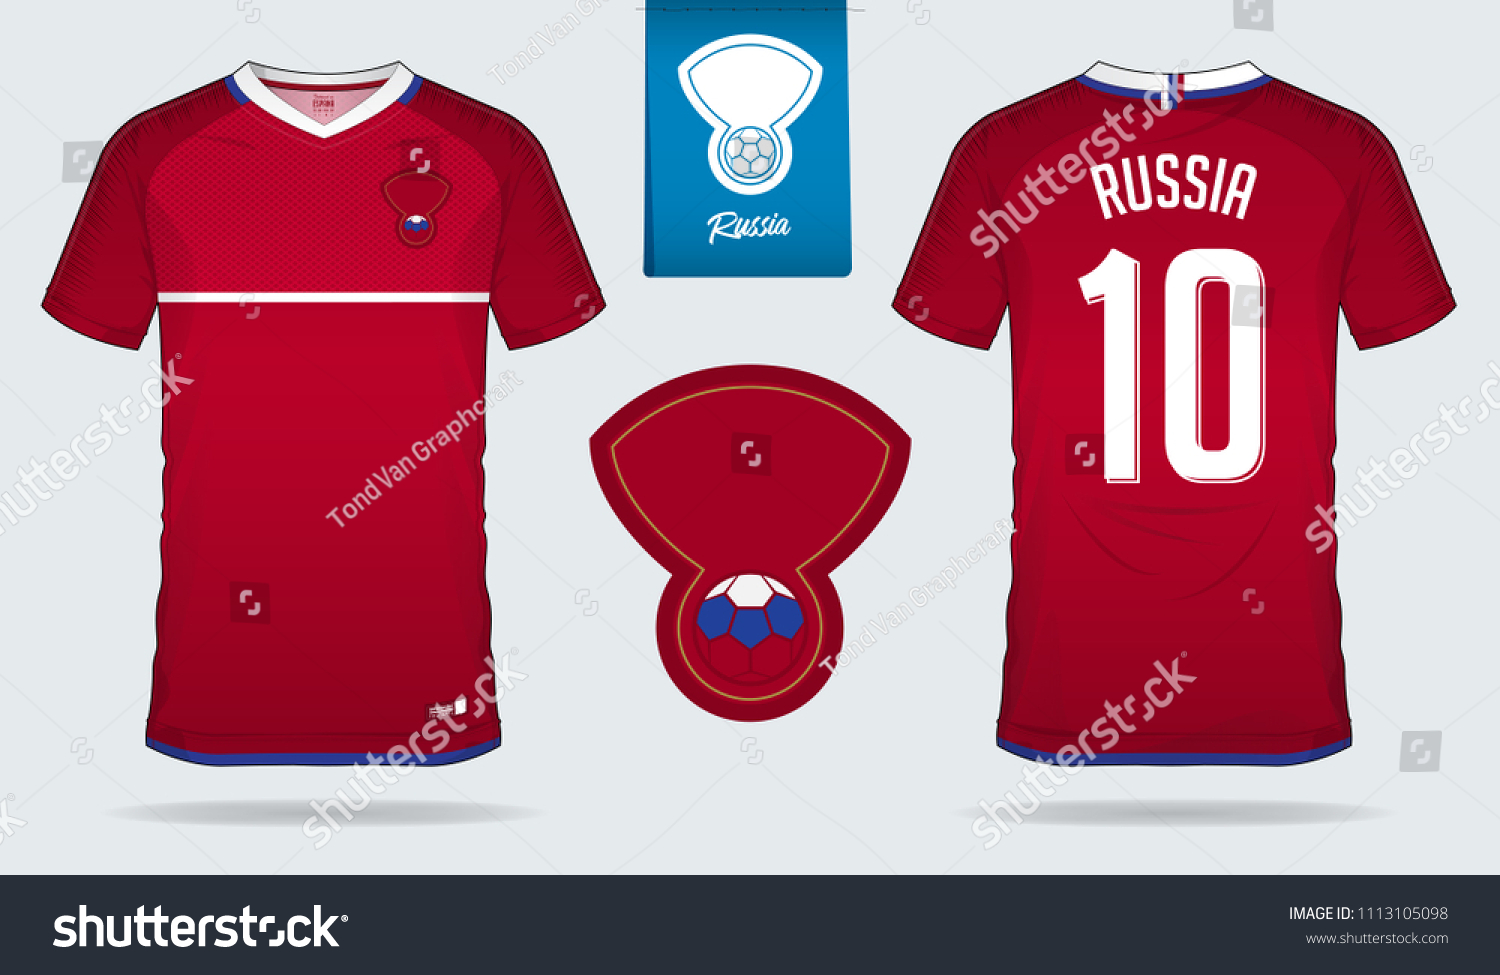 60f0e4d4aec Soccer jersey or football kit template design for Russia national football  team. Front and back